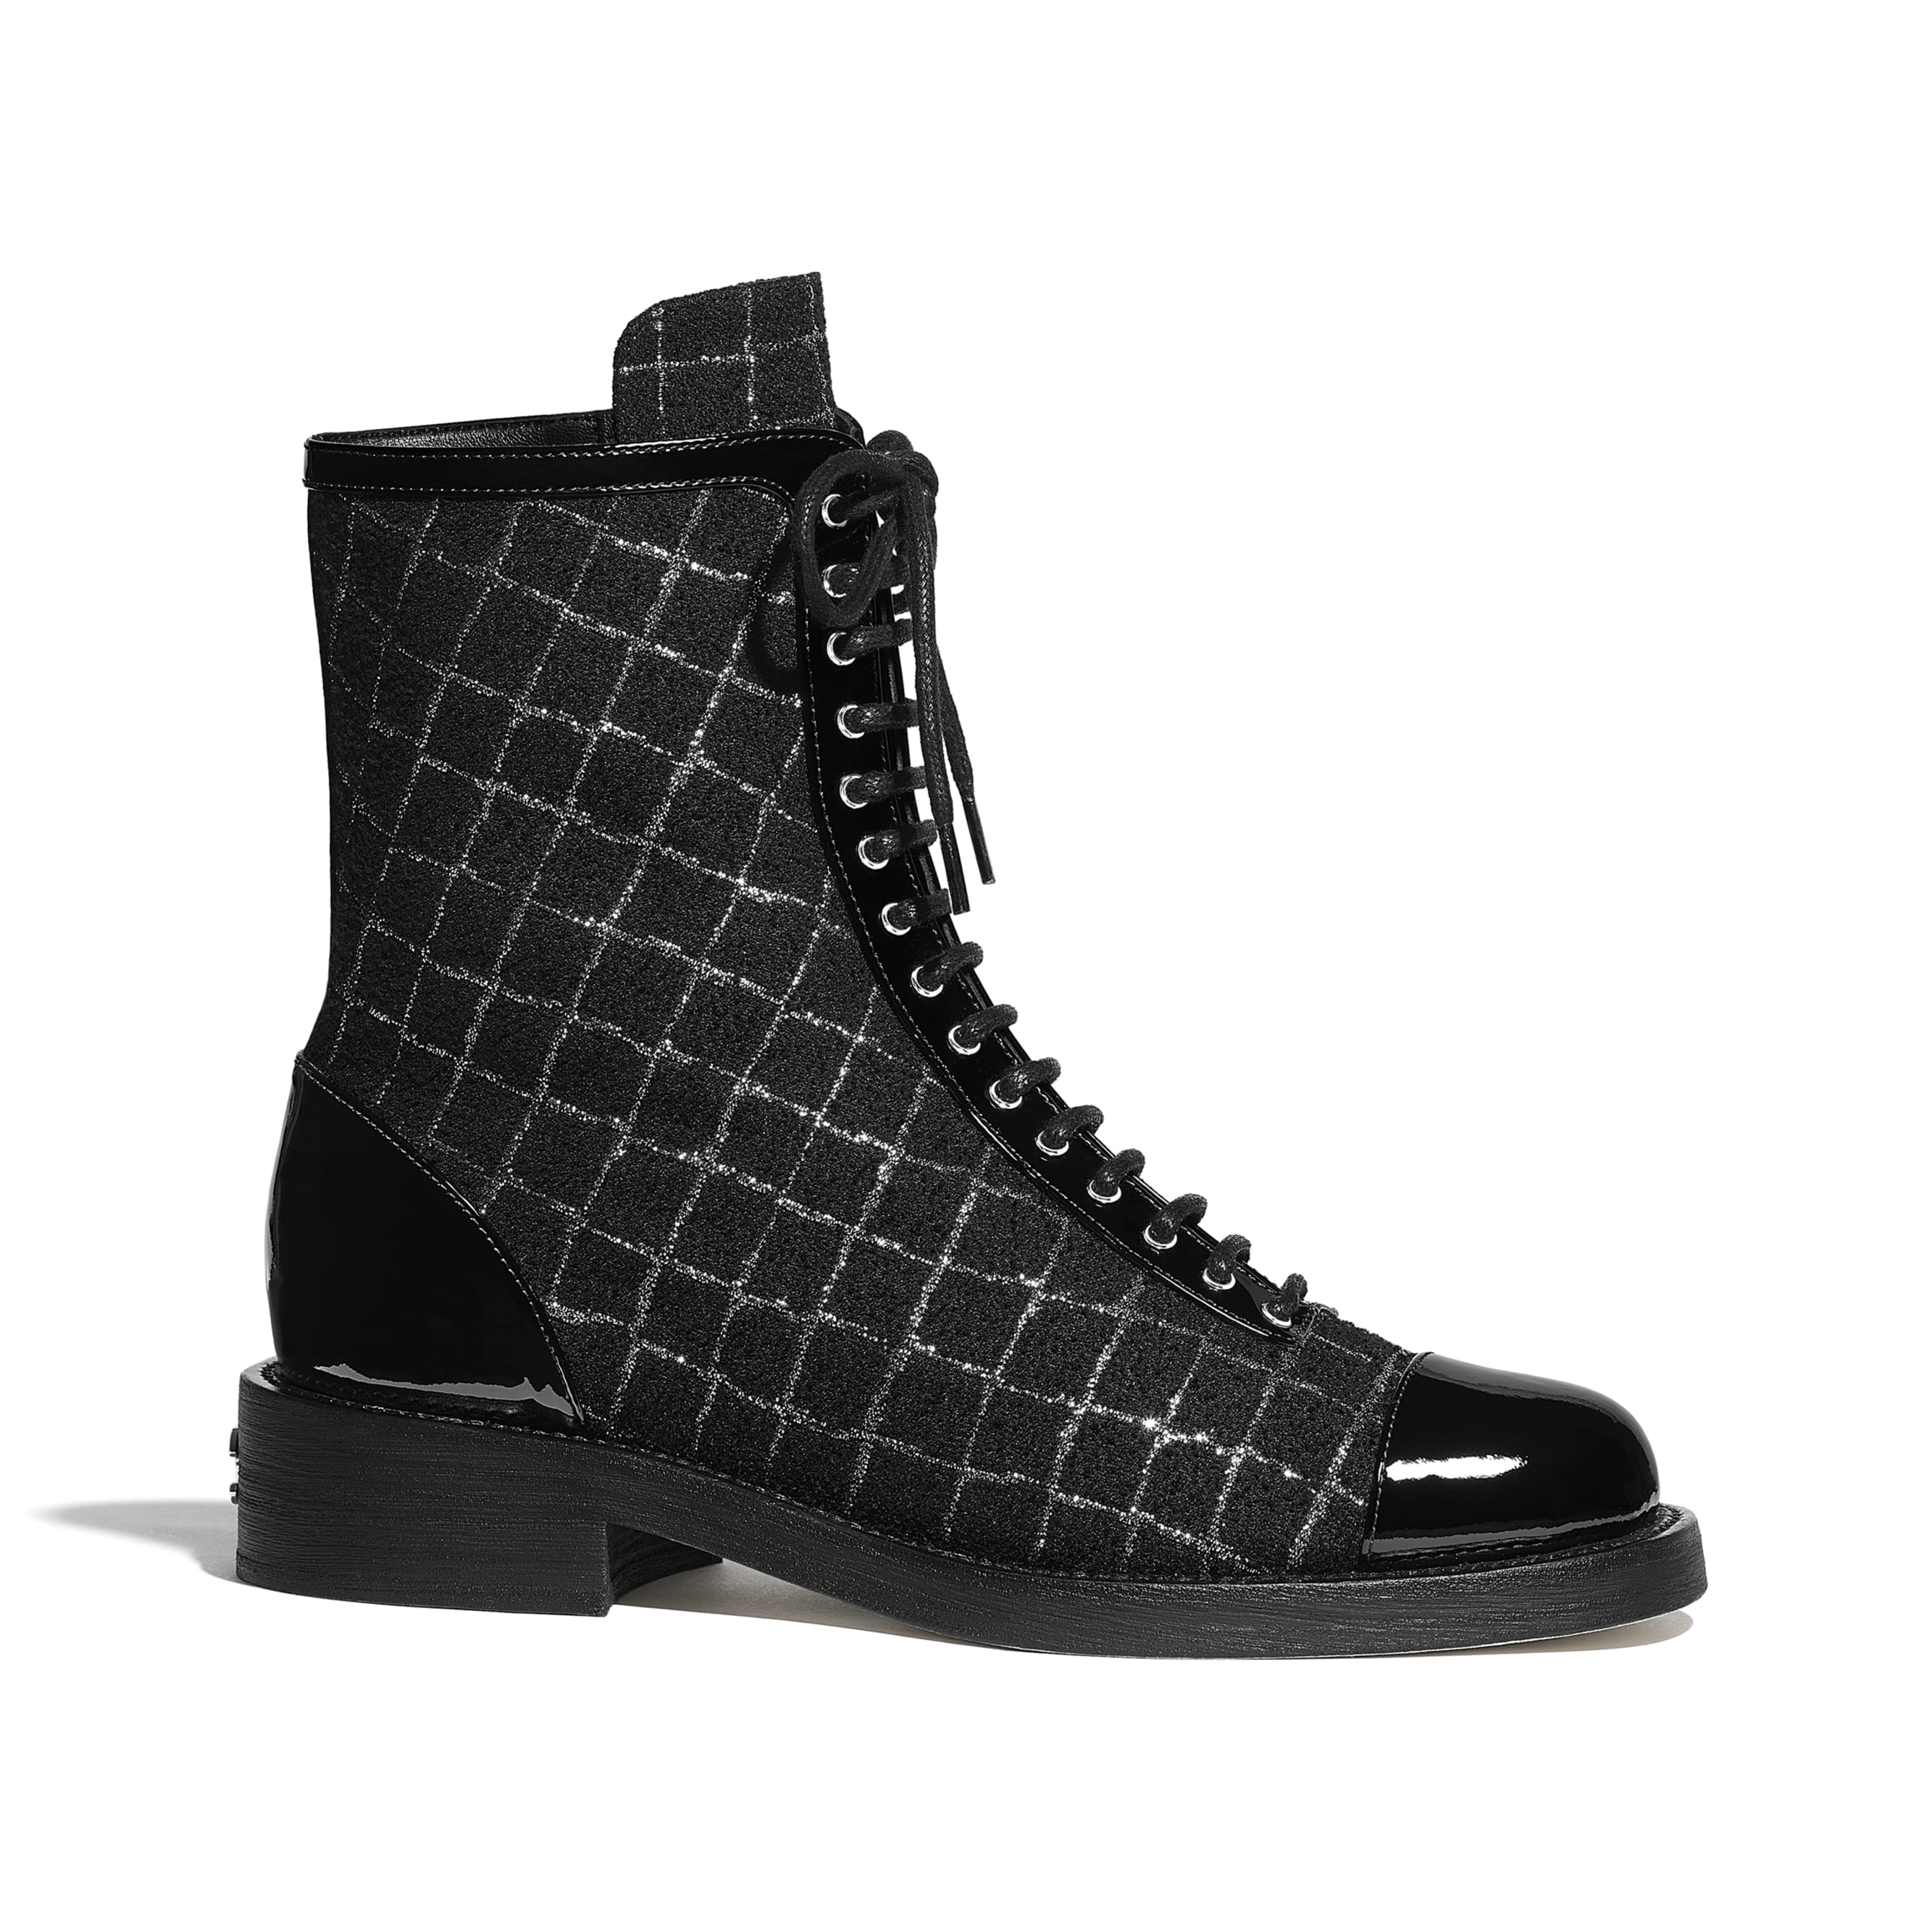 Ankle Boots - Black & Silver - Tweed & Patent Calfskin - CHANEL - Default view - see standard sized version